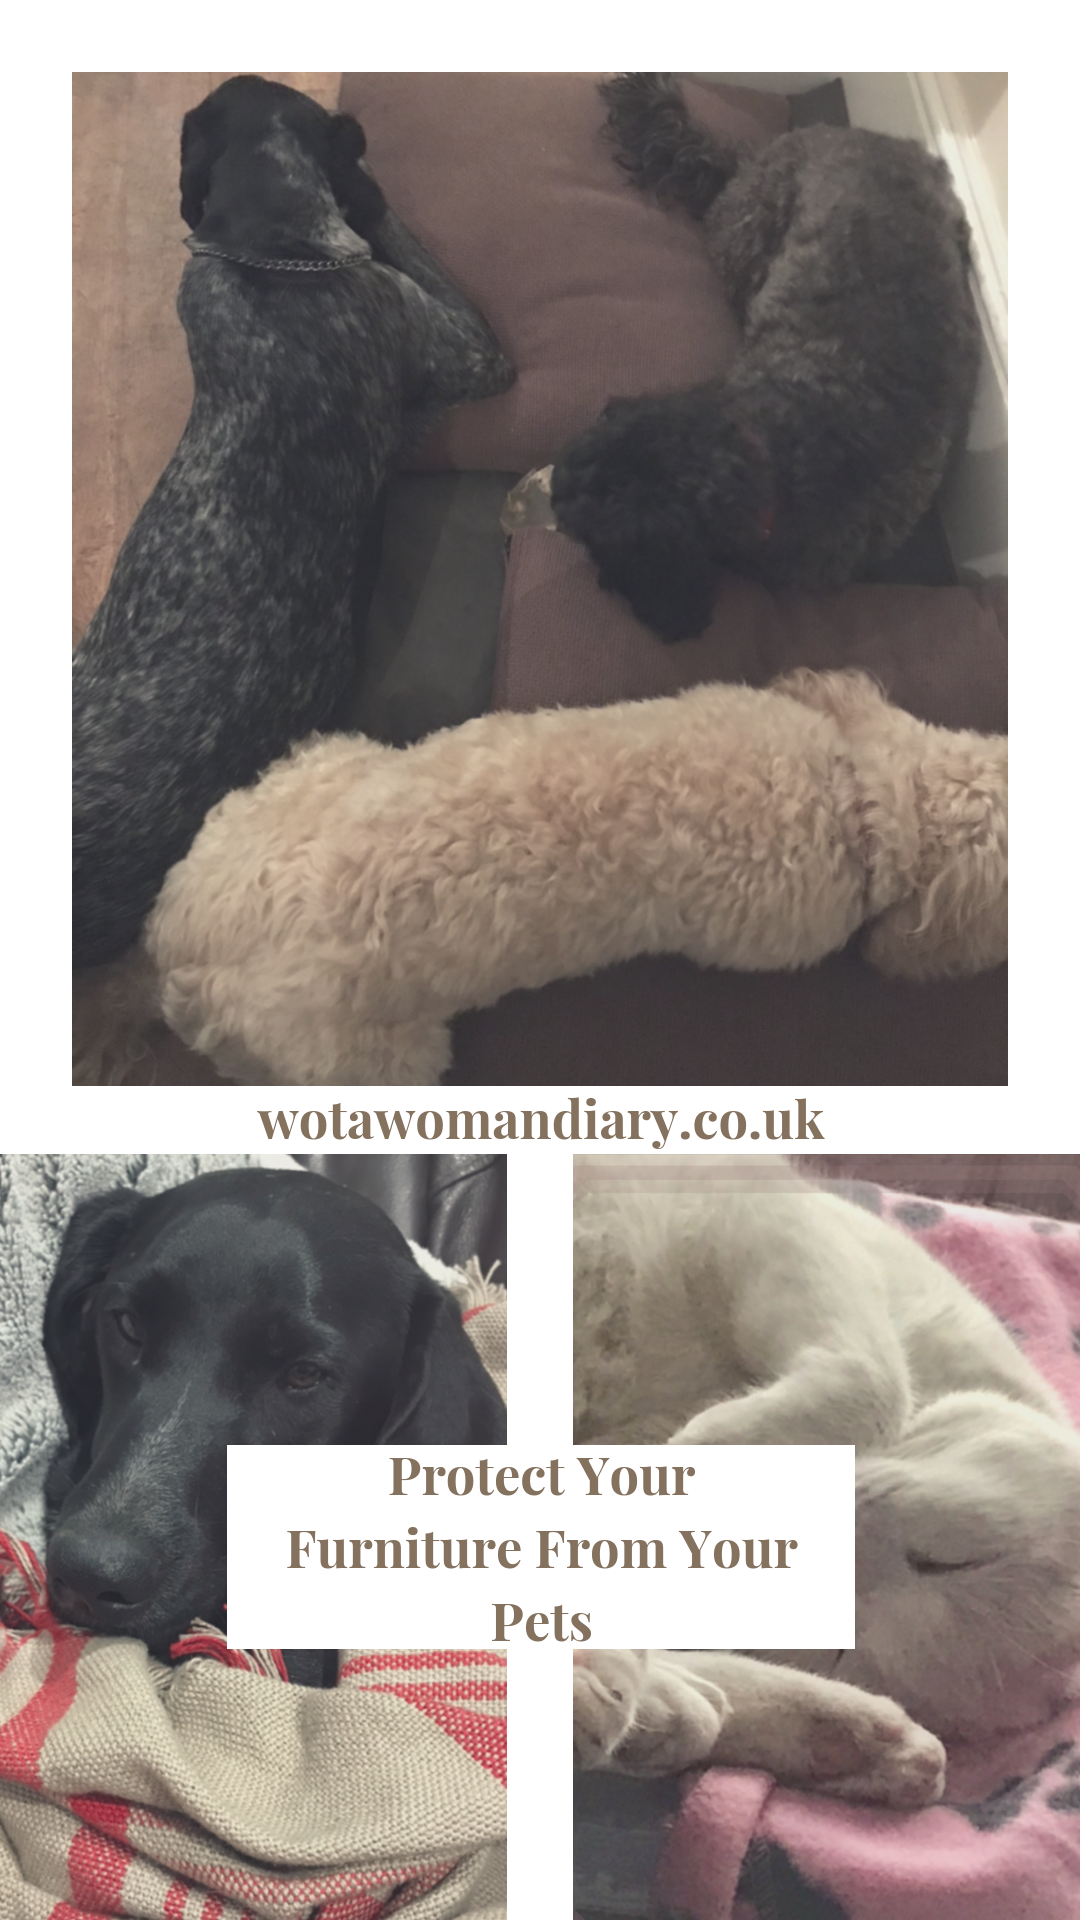 Protect Your Furniture From Your Pets text Image with dogs